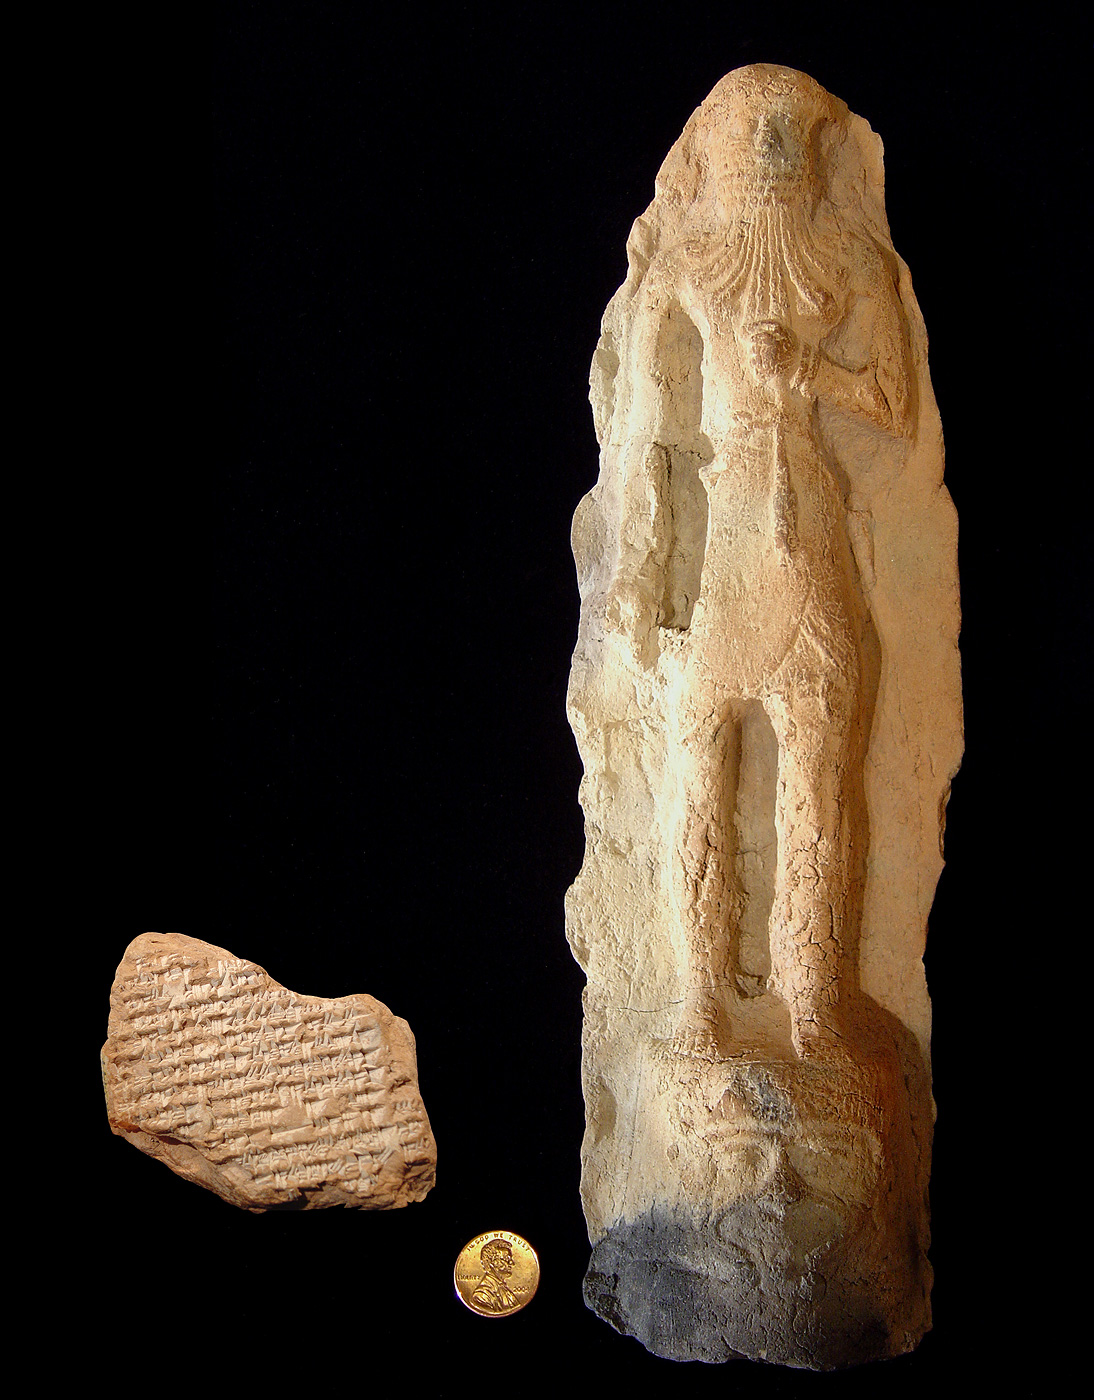 writing and literature before islam christopher woods fragment from second tablet of the epic of gilgamesh plaque gilgamesh and humbaba